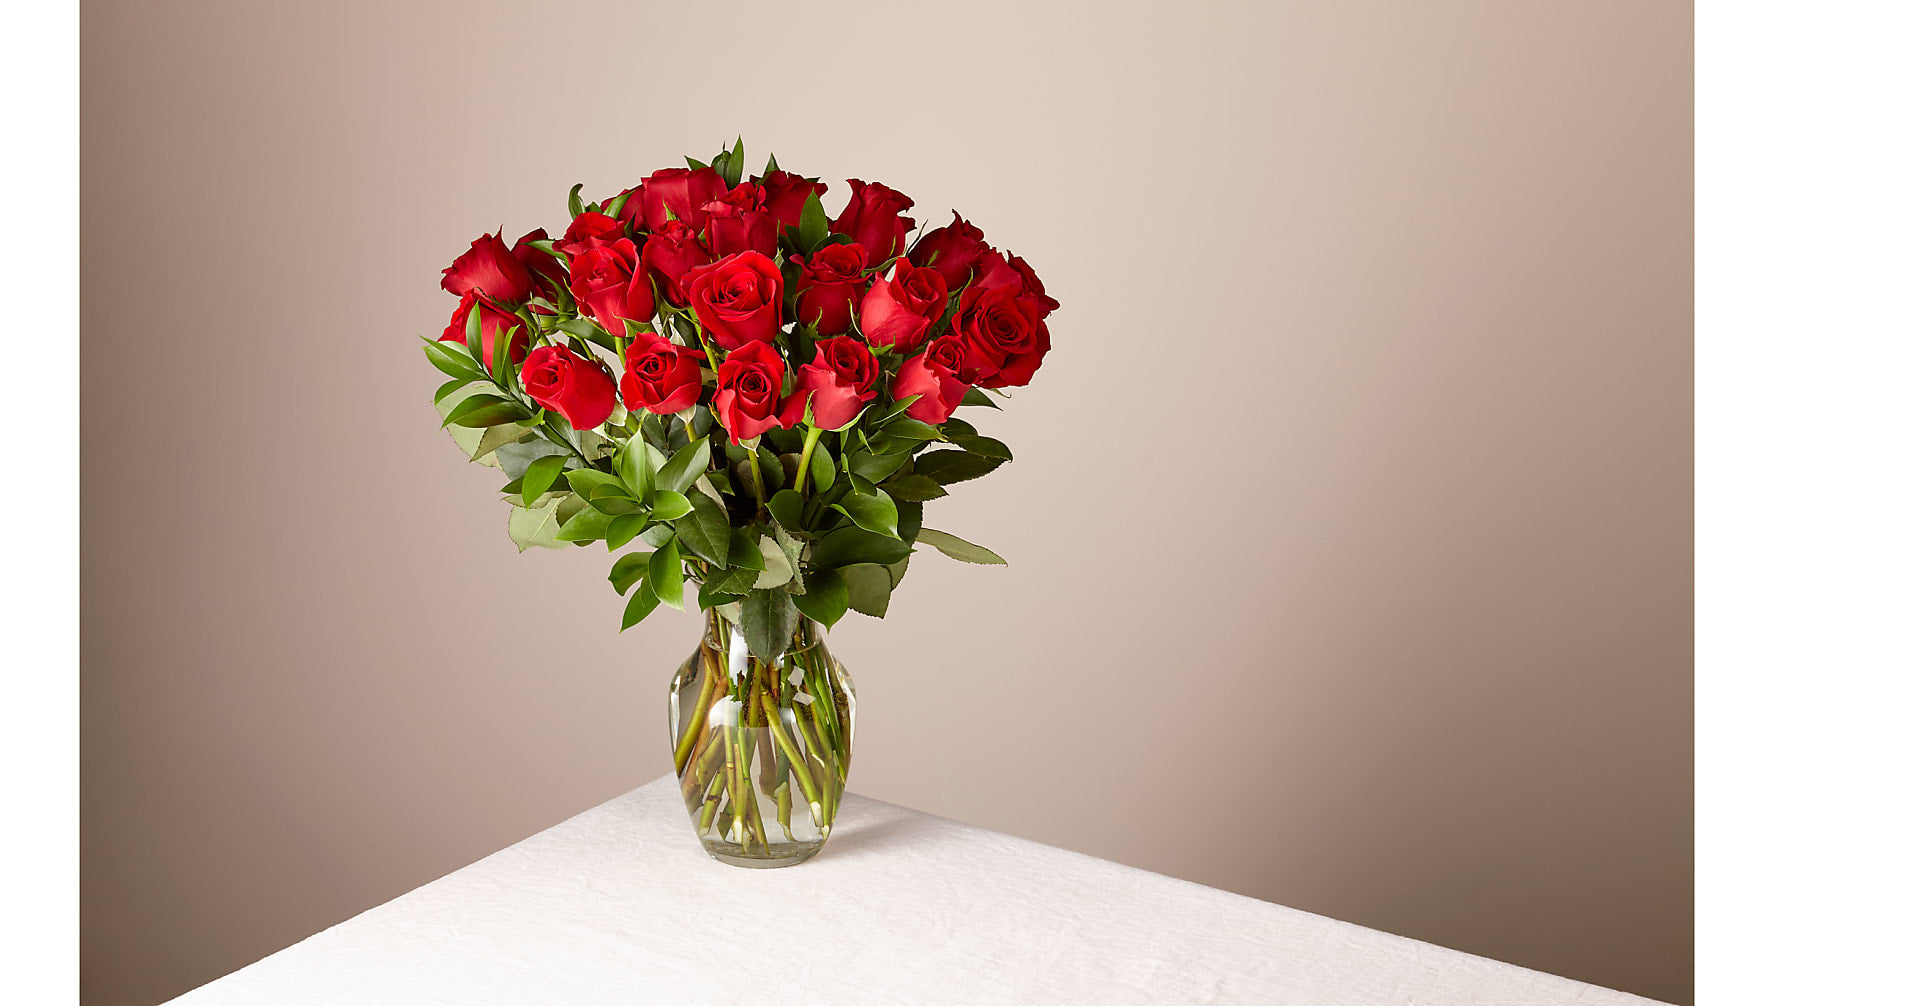 24 Long Stem Red Roses with Glass Vase - Image 1 Of 5